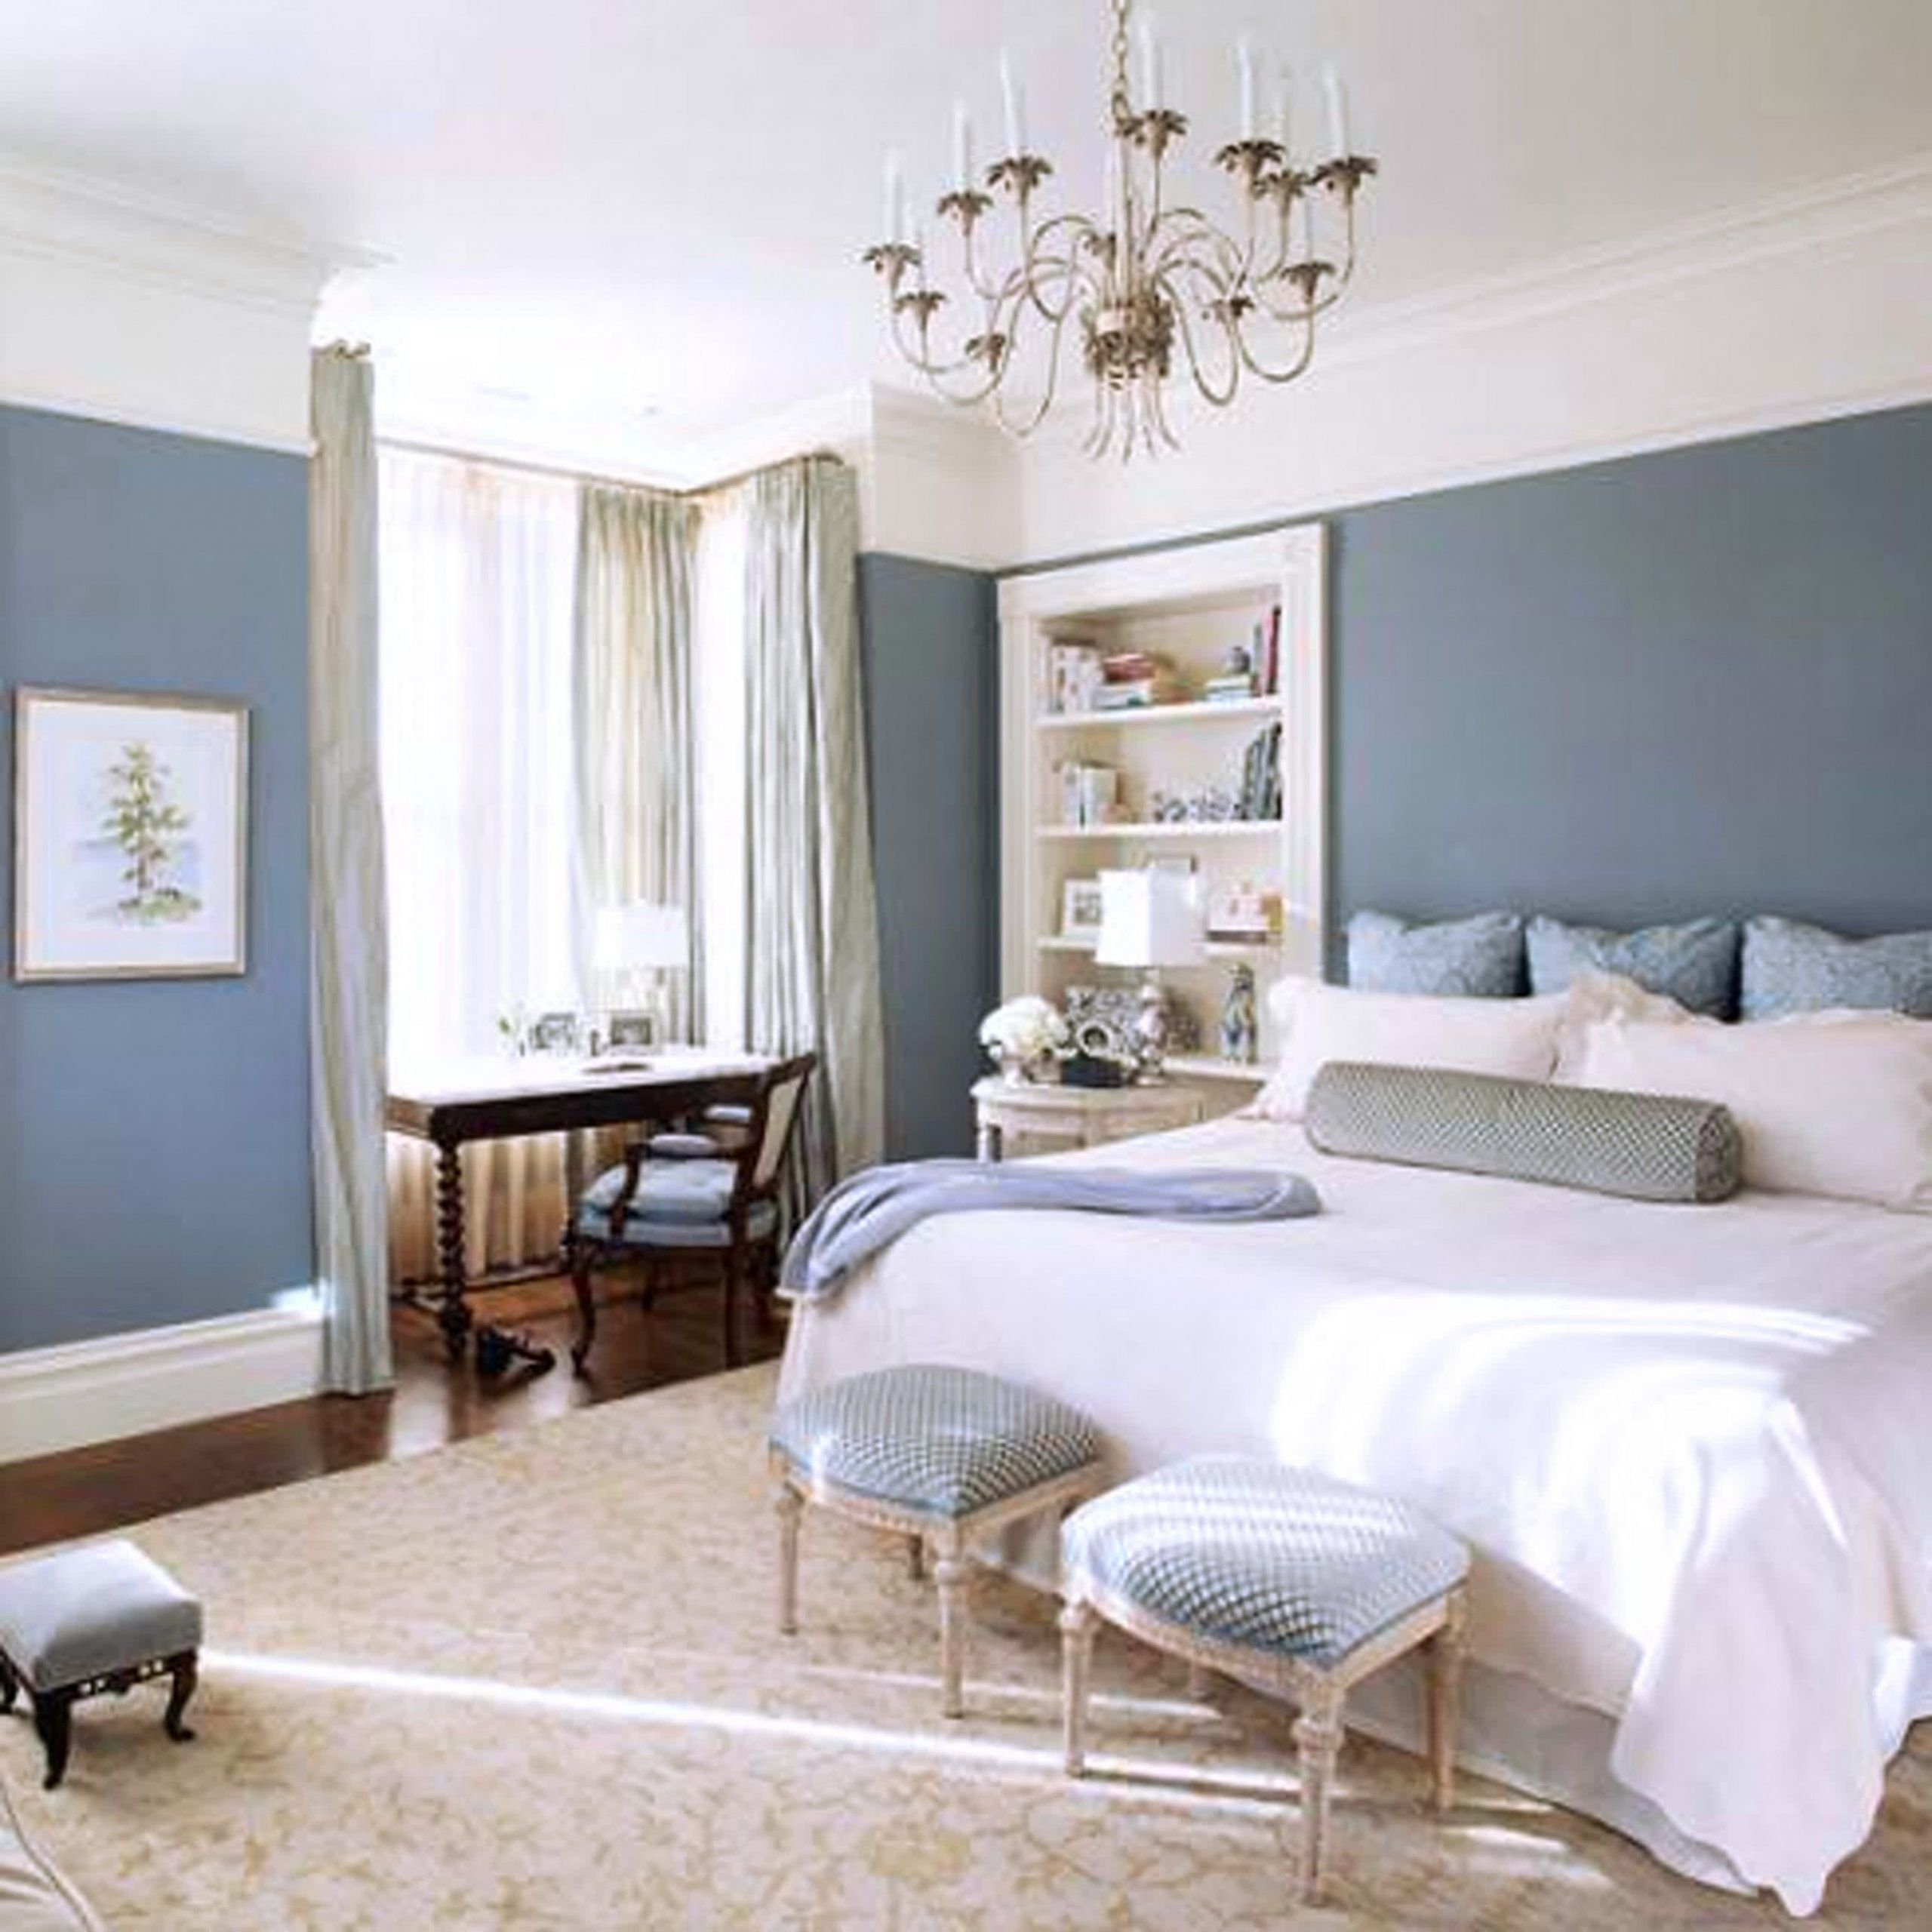 Light Blue Accent Wall Bedroom In 2020 Light Blue Bedroom Blue Master Bedroom Blue Bedroom Walls